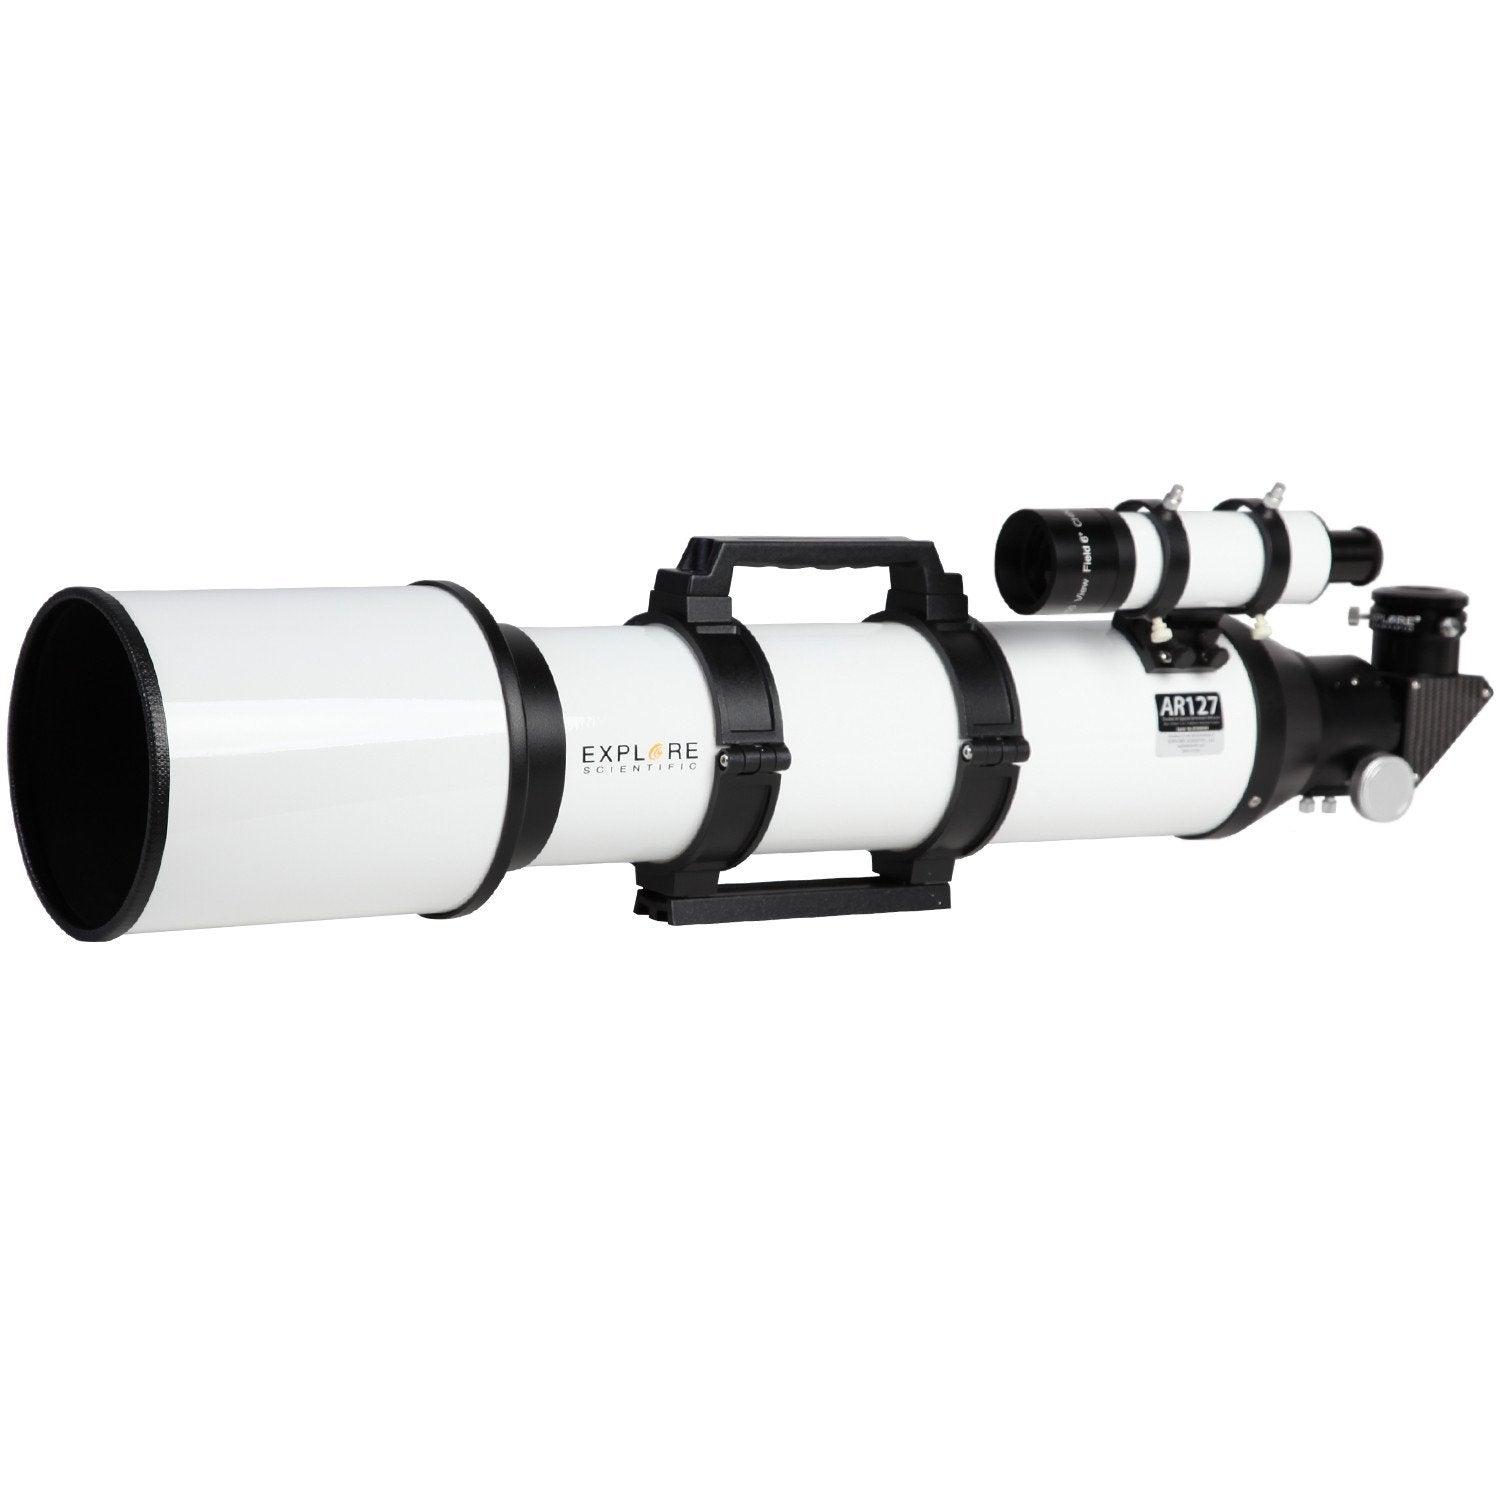 Explore Scientific AR127 Air-Spaced Doublet Refractor